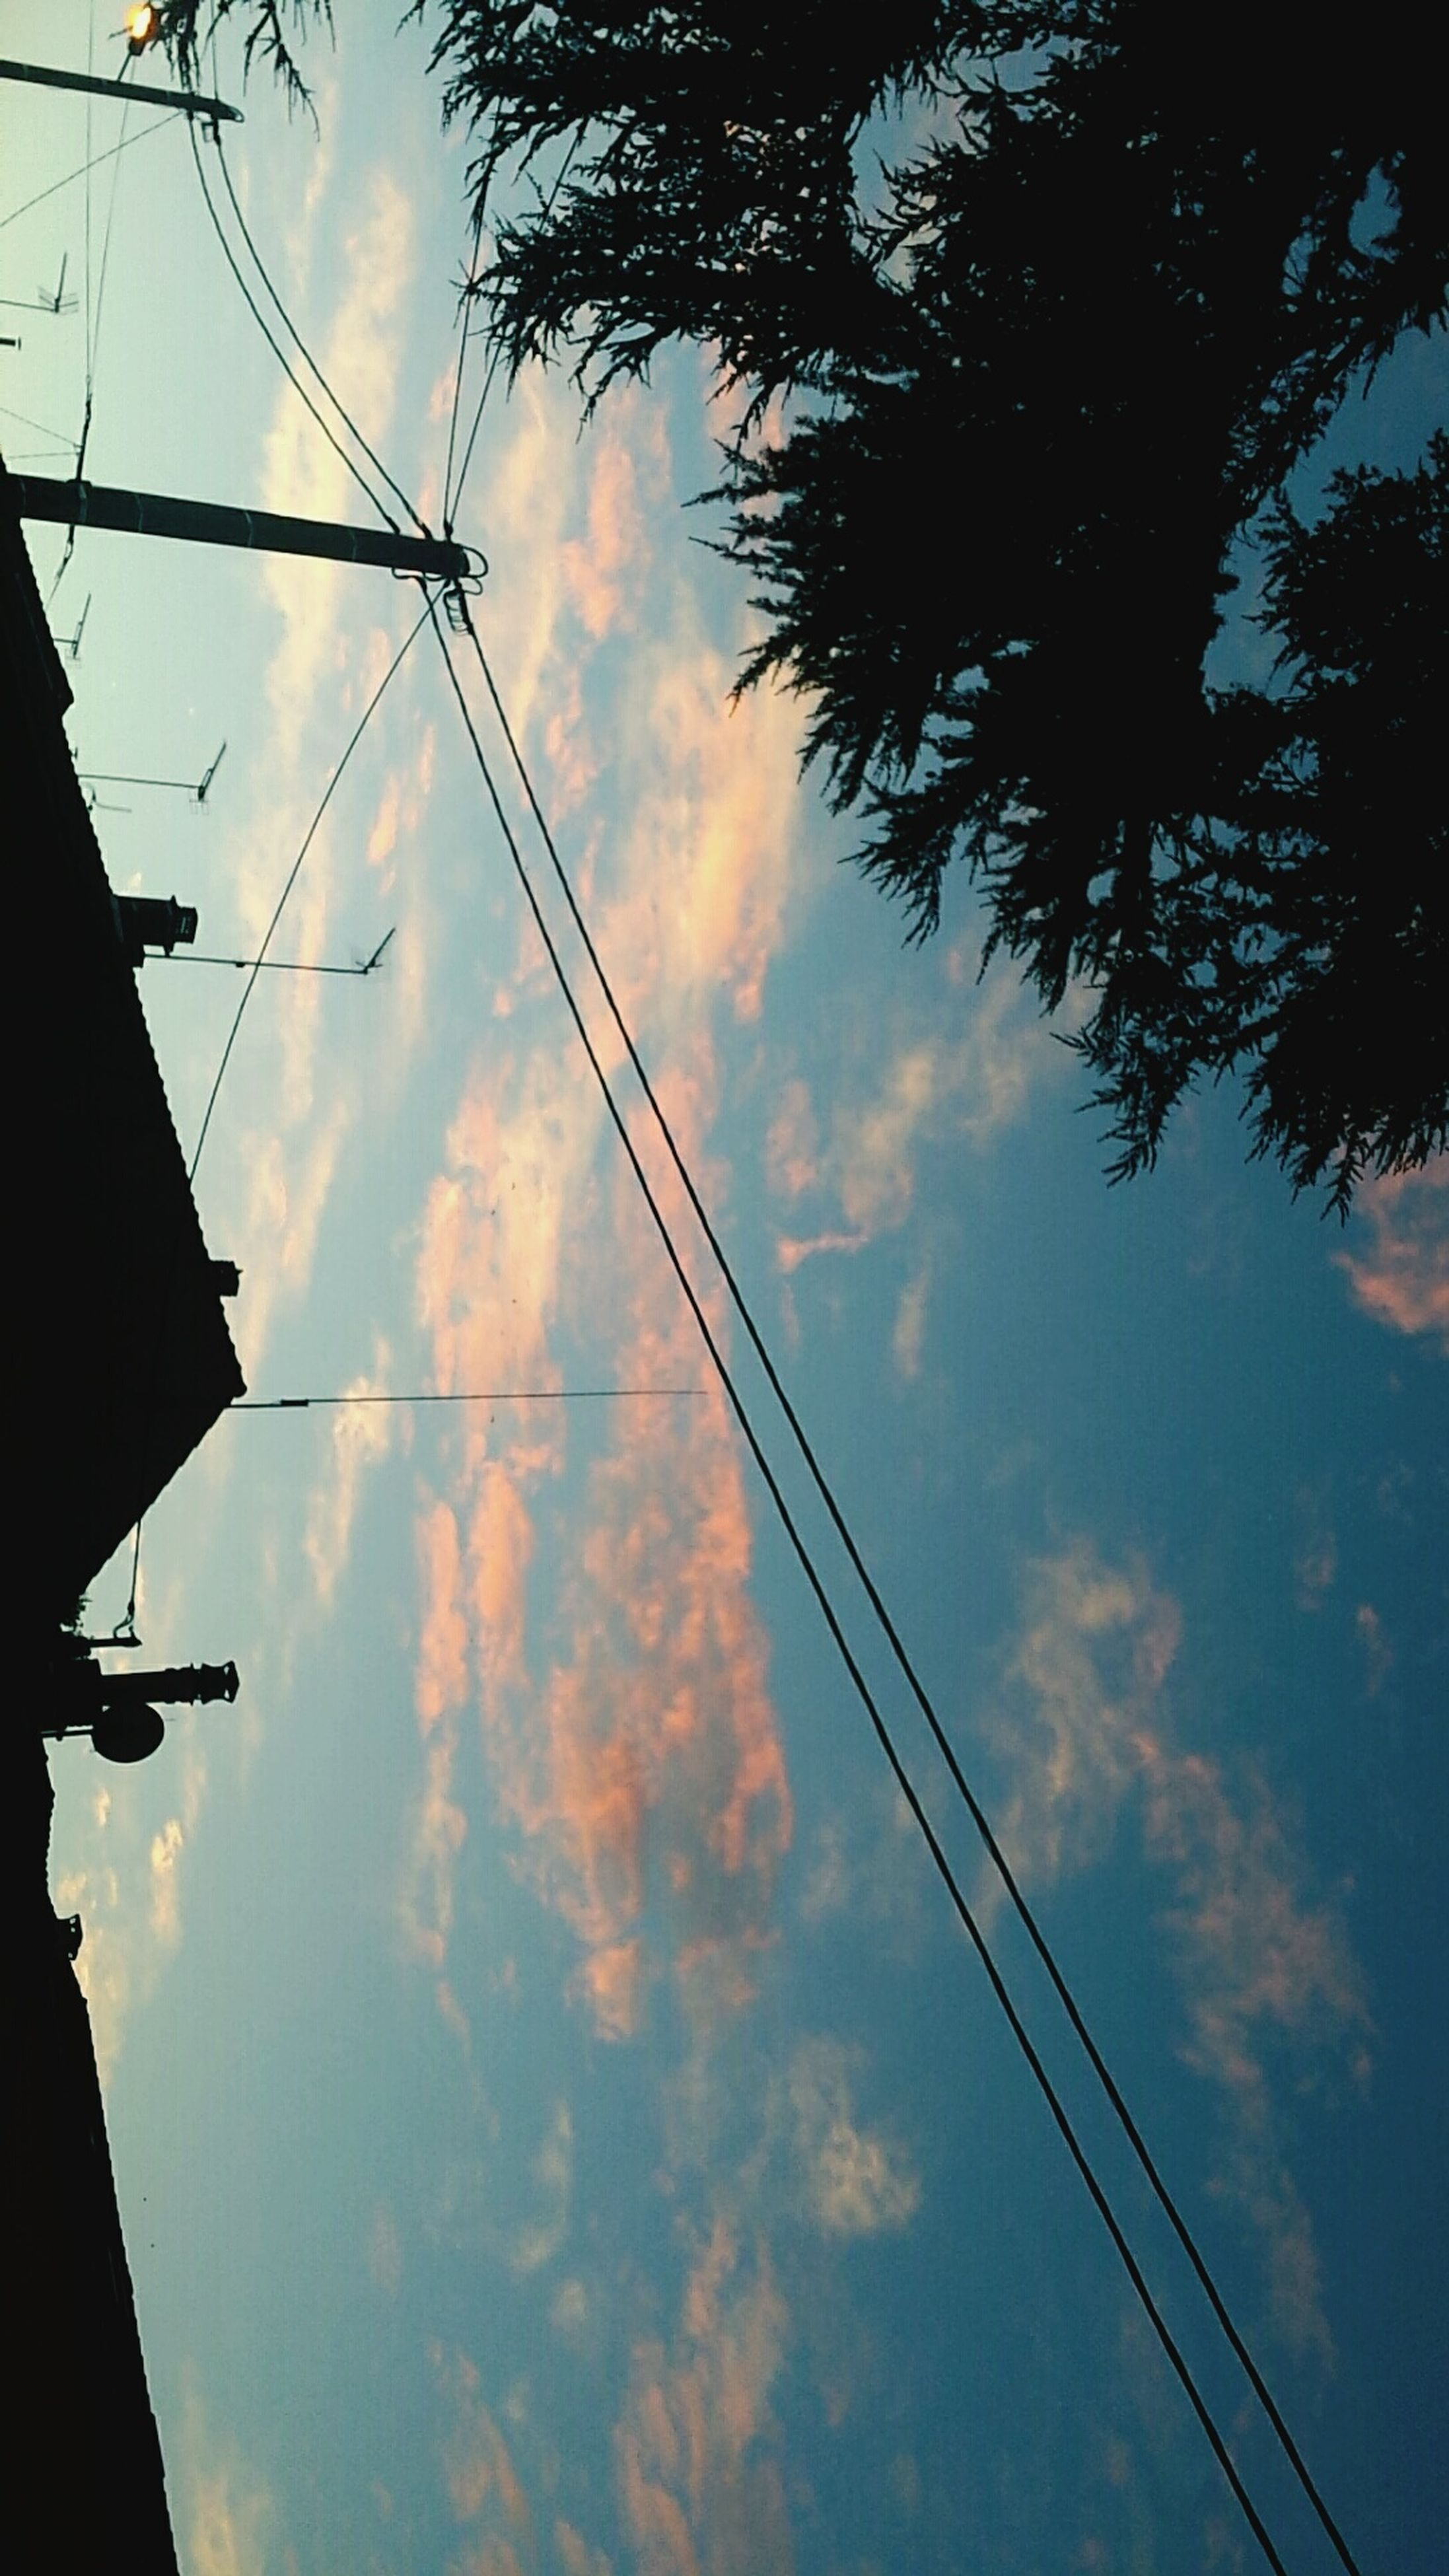 power line, low angle view, sky, electricity pylon, cable, electricity, power supply, connection, cloud - sky, silhouette, fuel and power generation, power cable, technology, cloudy, cloud, sunset, tree, built structure, outdoors, no people